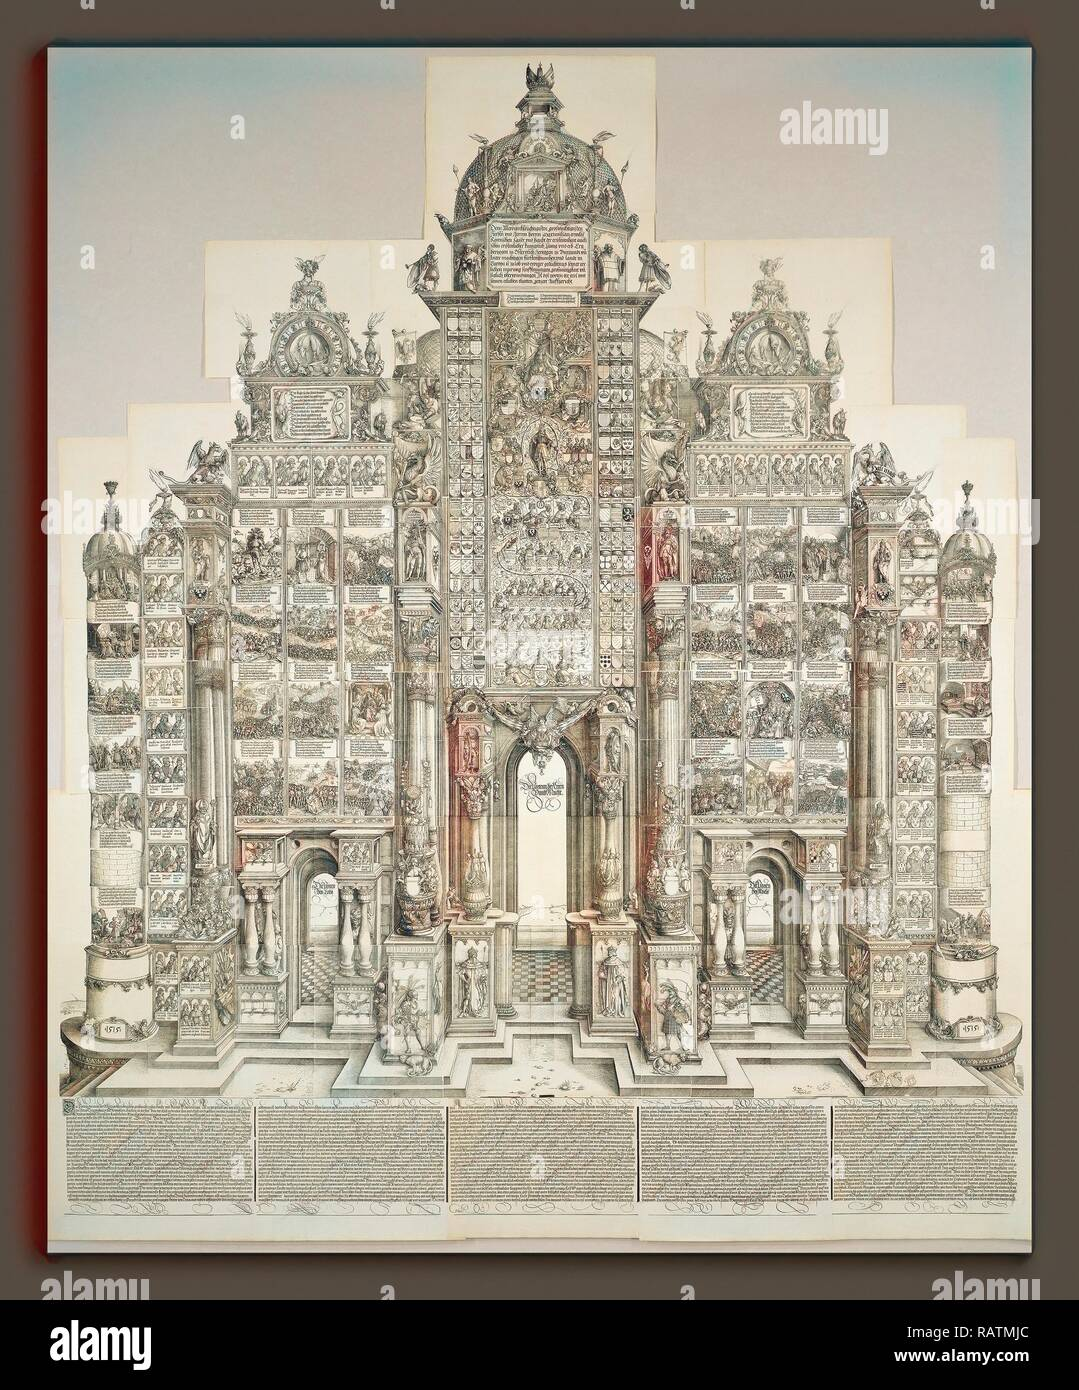 Albrecht Dürer, The Triumphal Arch of Maximilian, German, 1471 - 1528, 1515 (1799 edition), 42 woodcuts and 2 reimagined - Stock Image